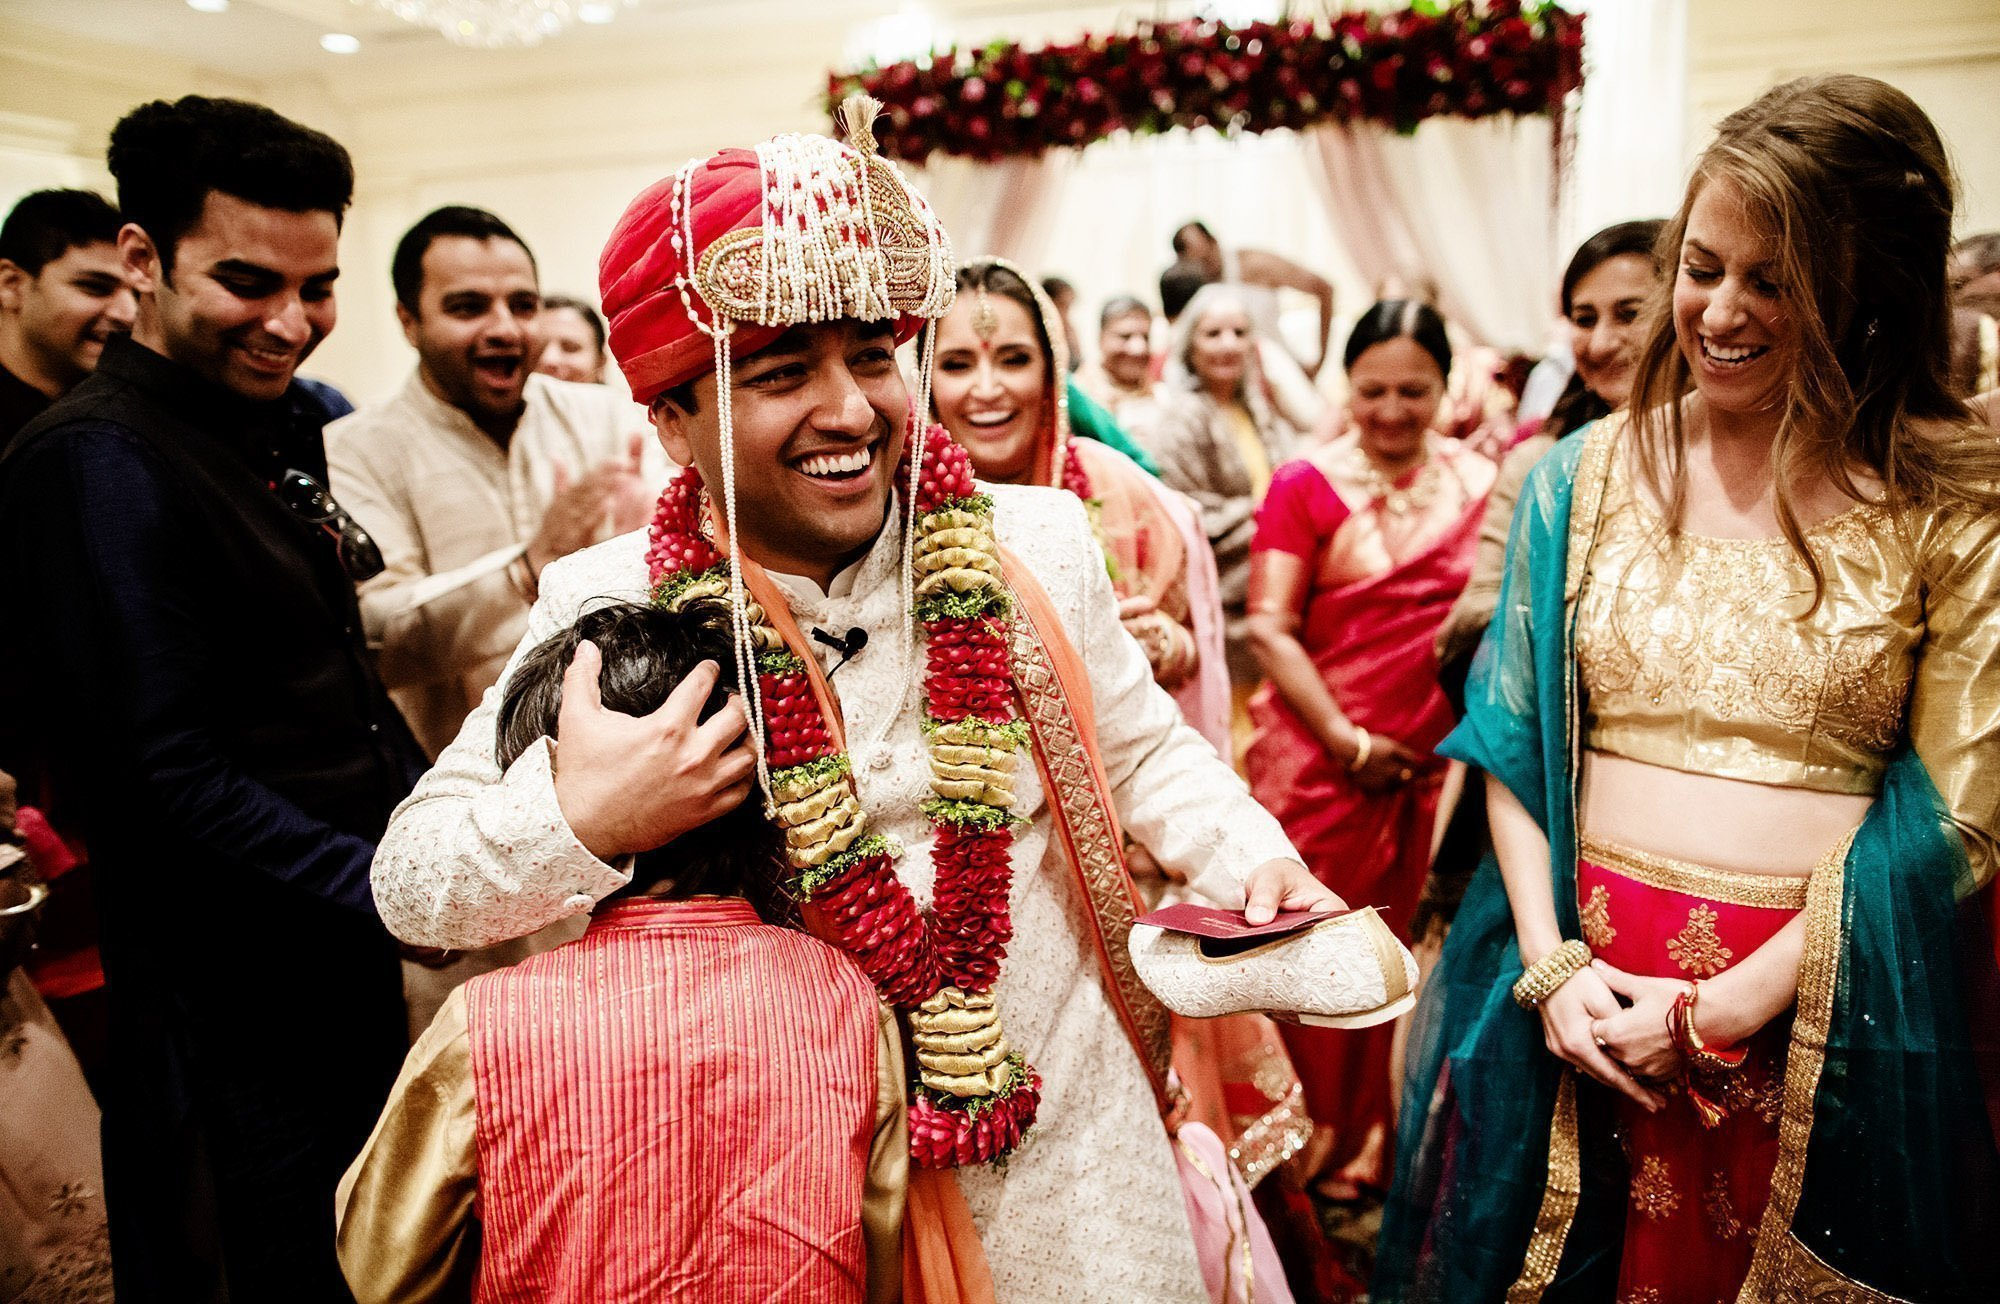 Wentworth by the Sea Wedding  I  The groom smiles at the conclusion of the Hindu ceremony.